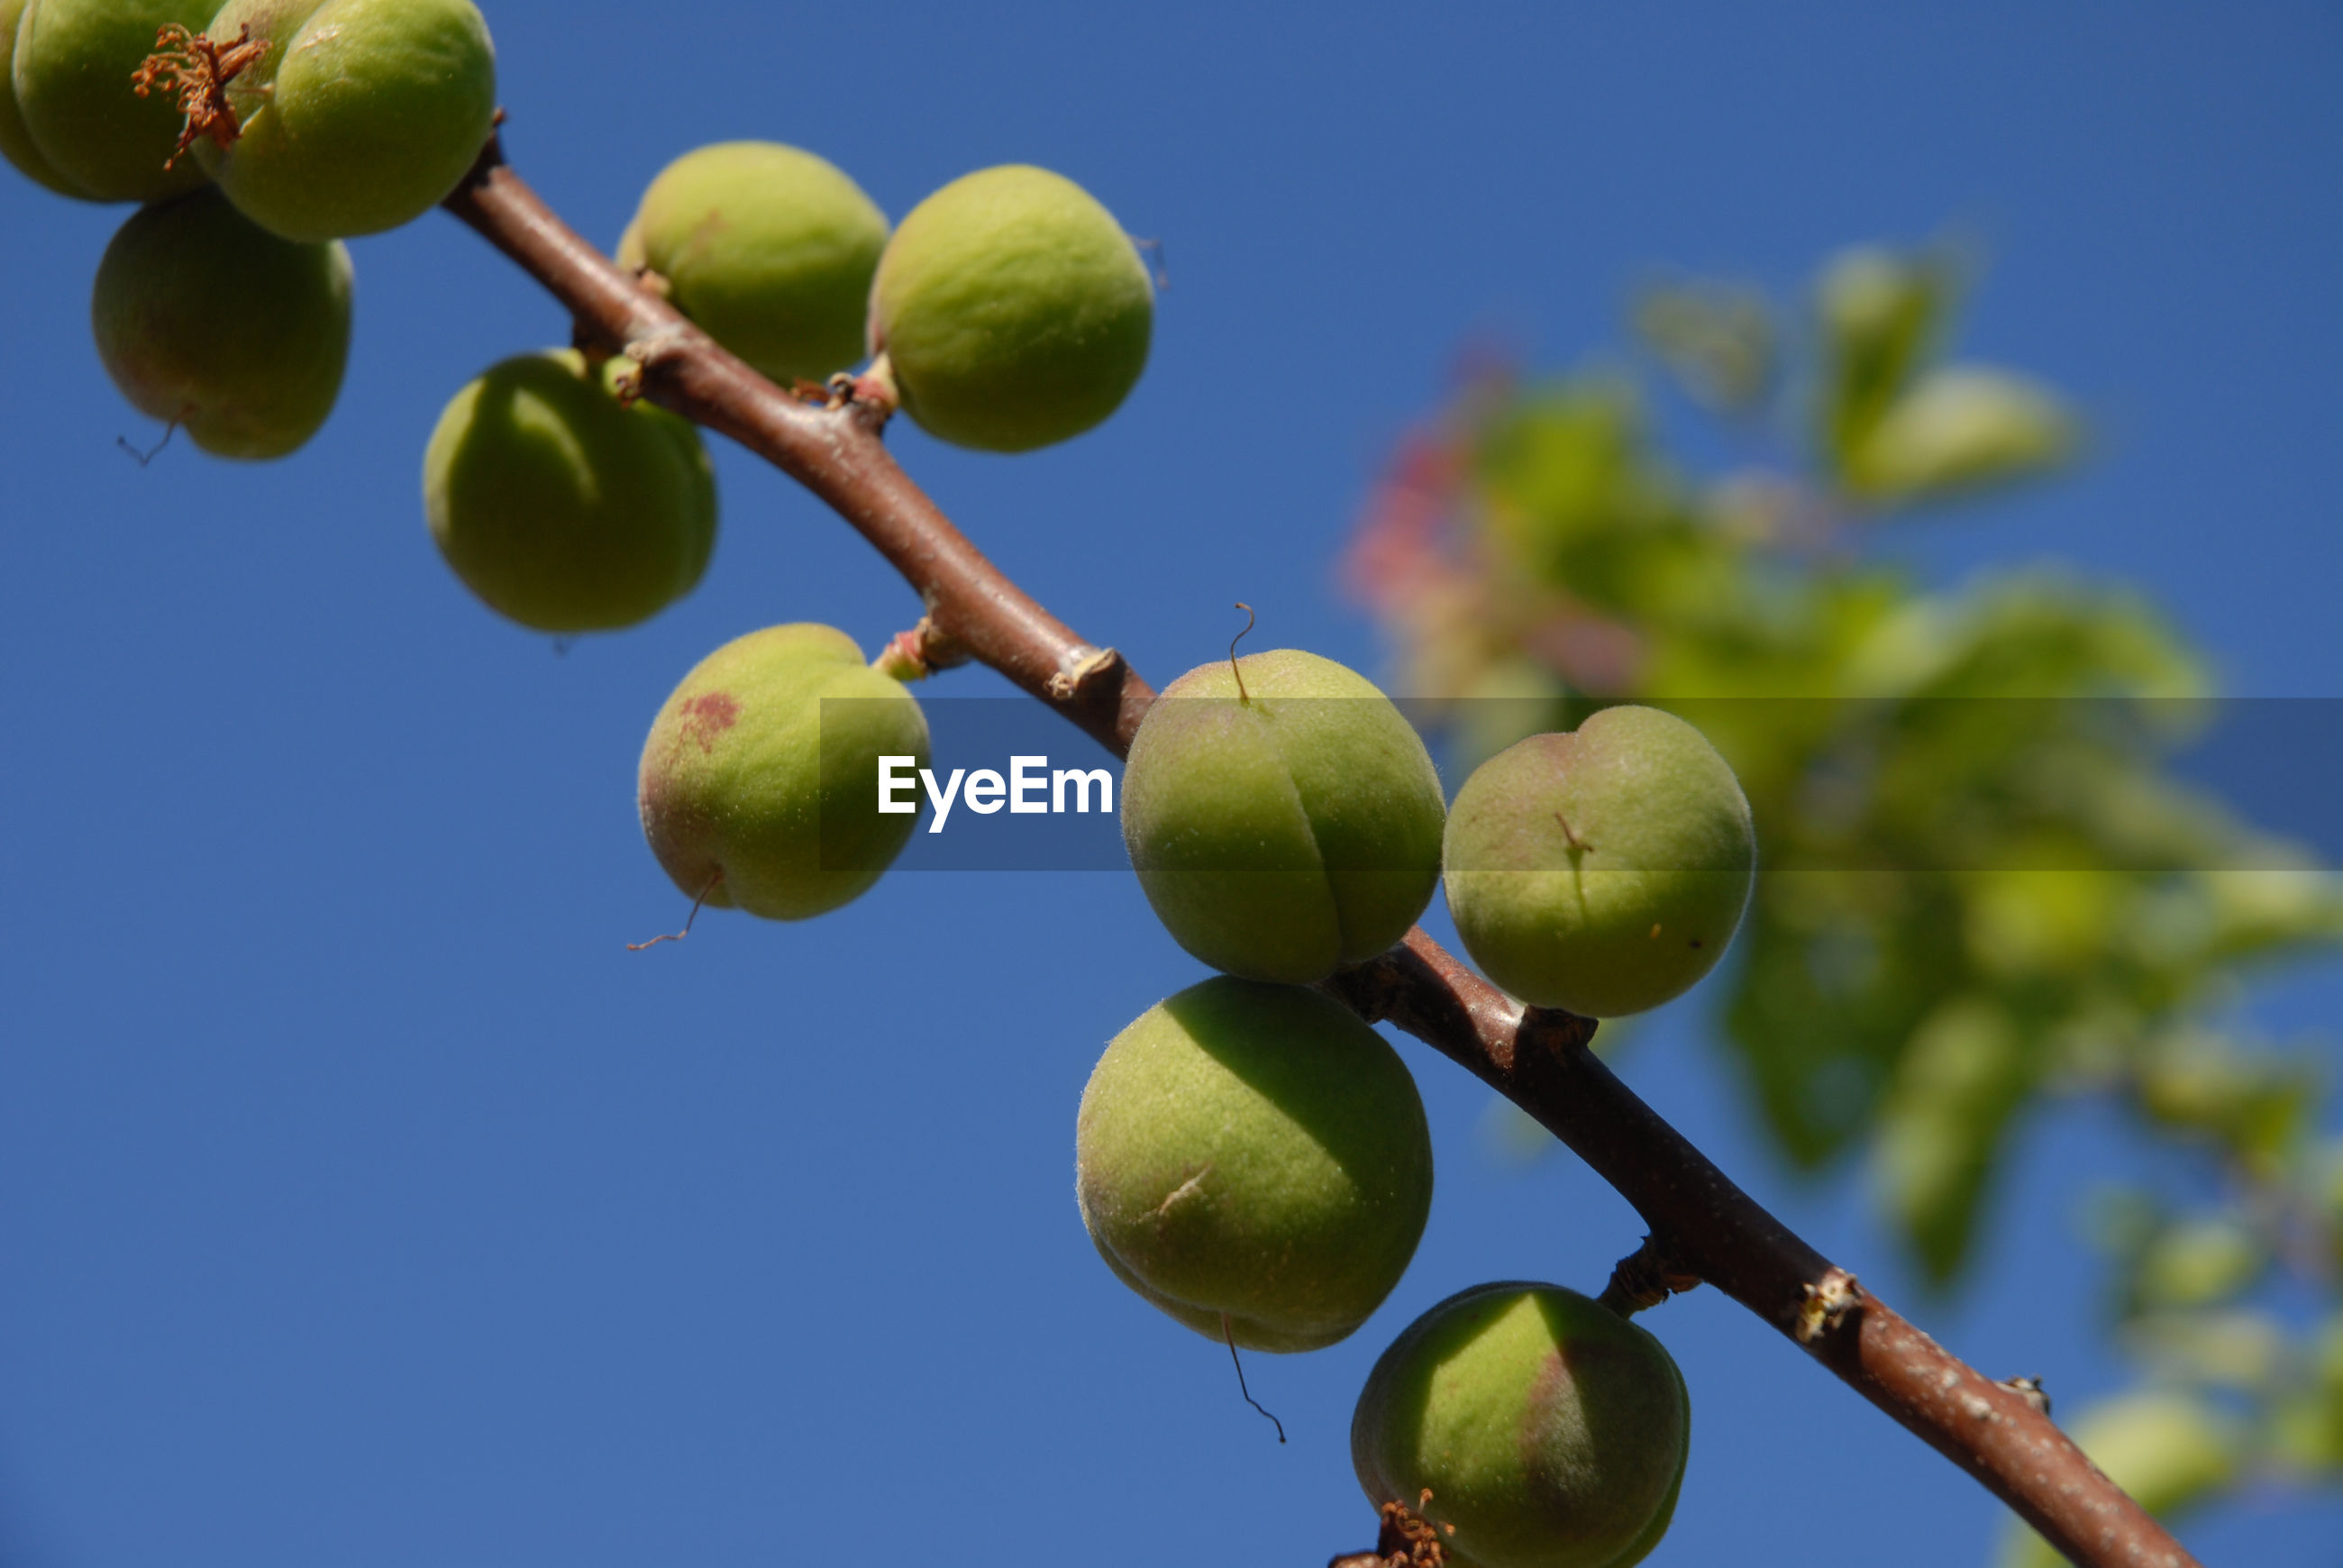 CLOSE-UP OF FRUITS GROWING ON TREE AGAINST SKY